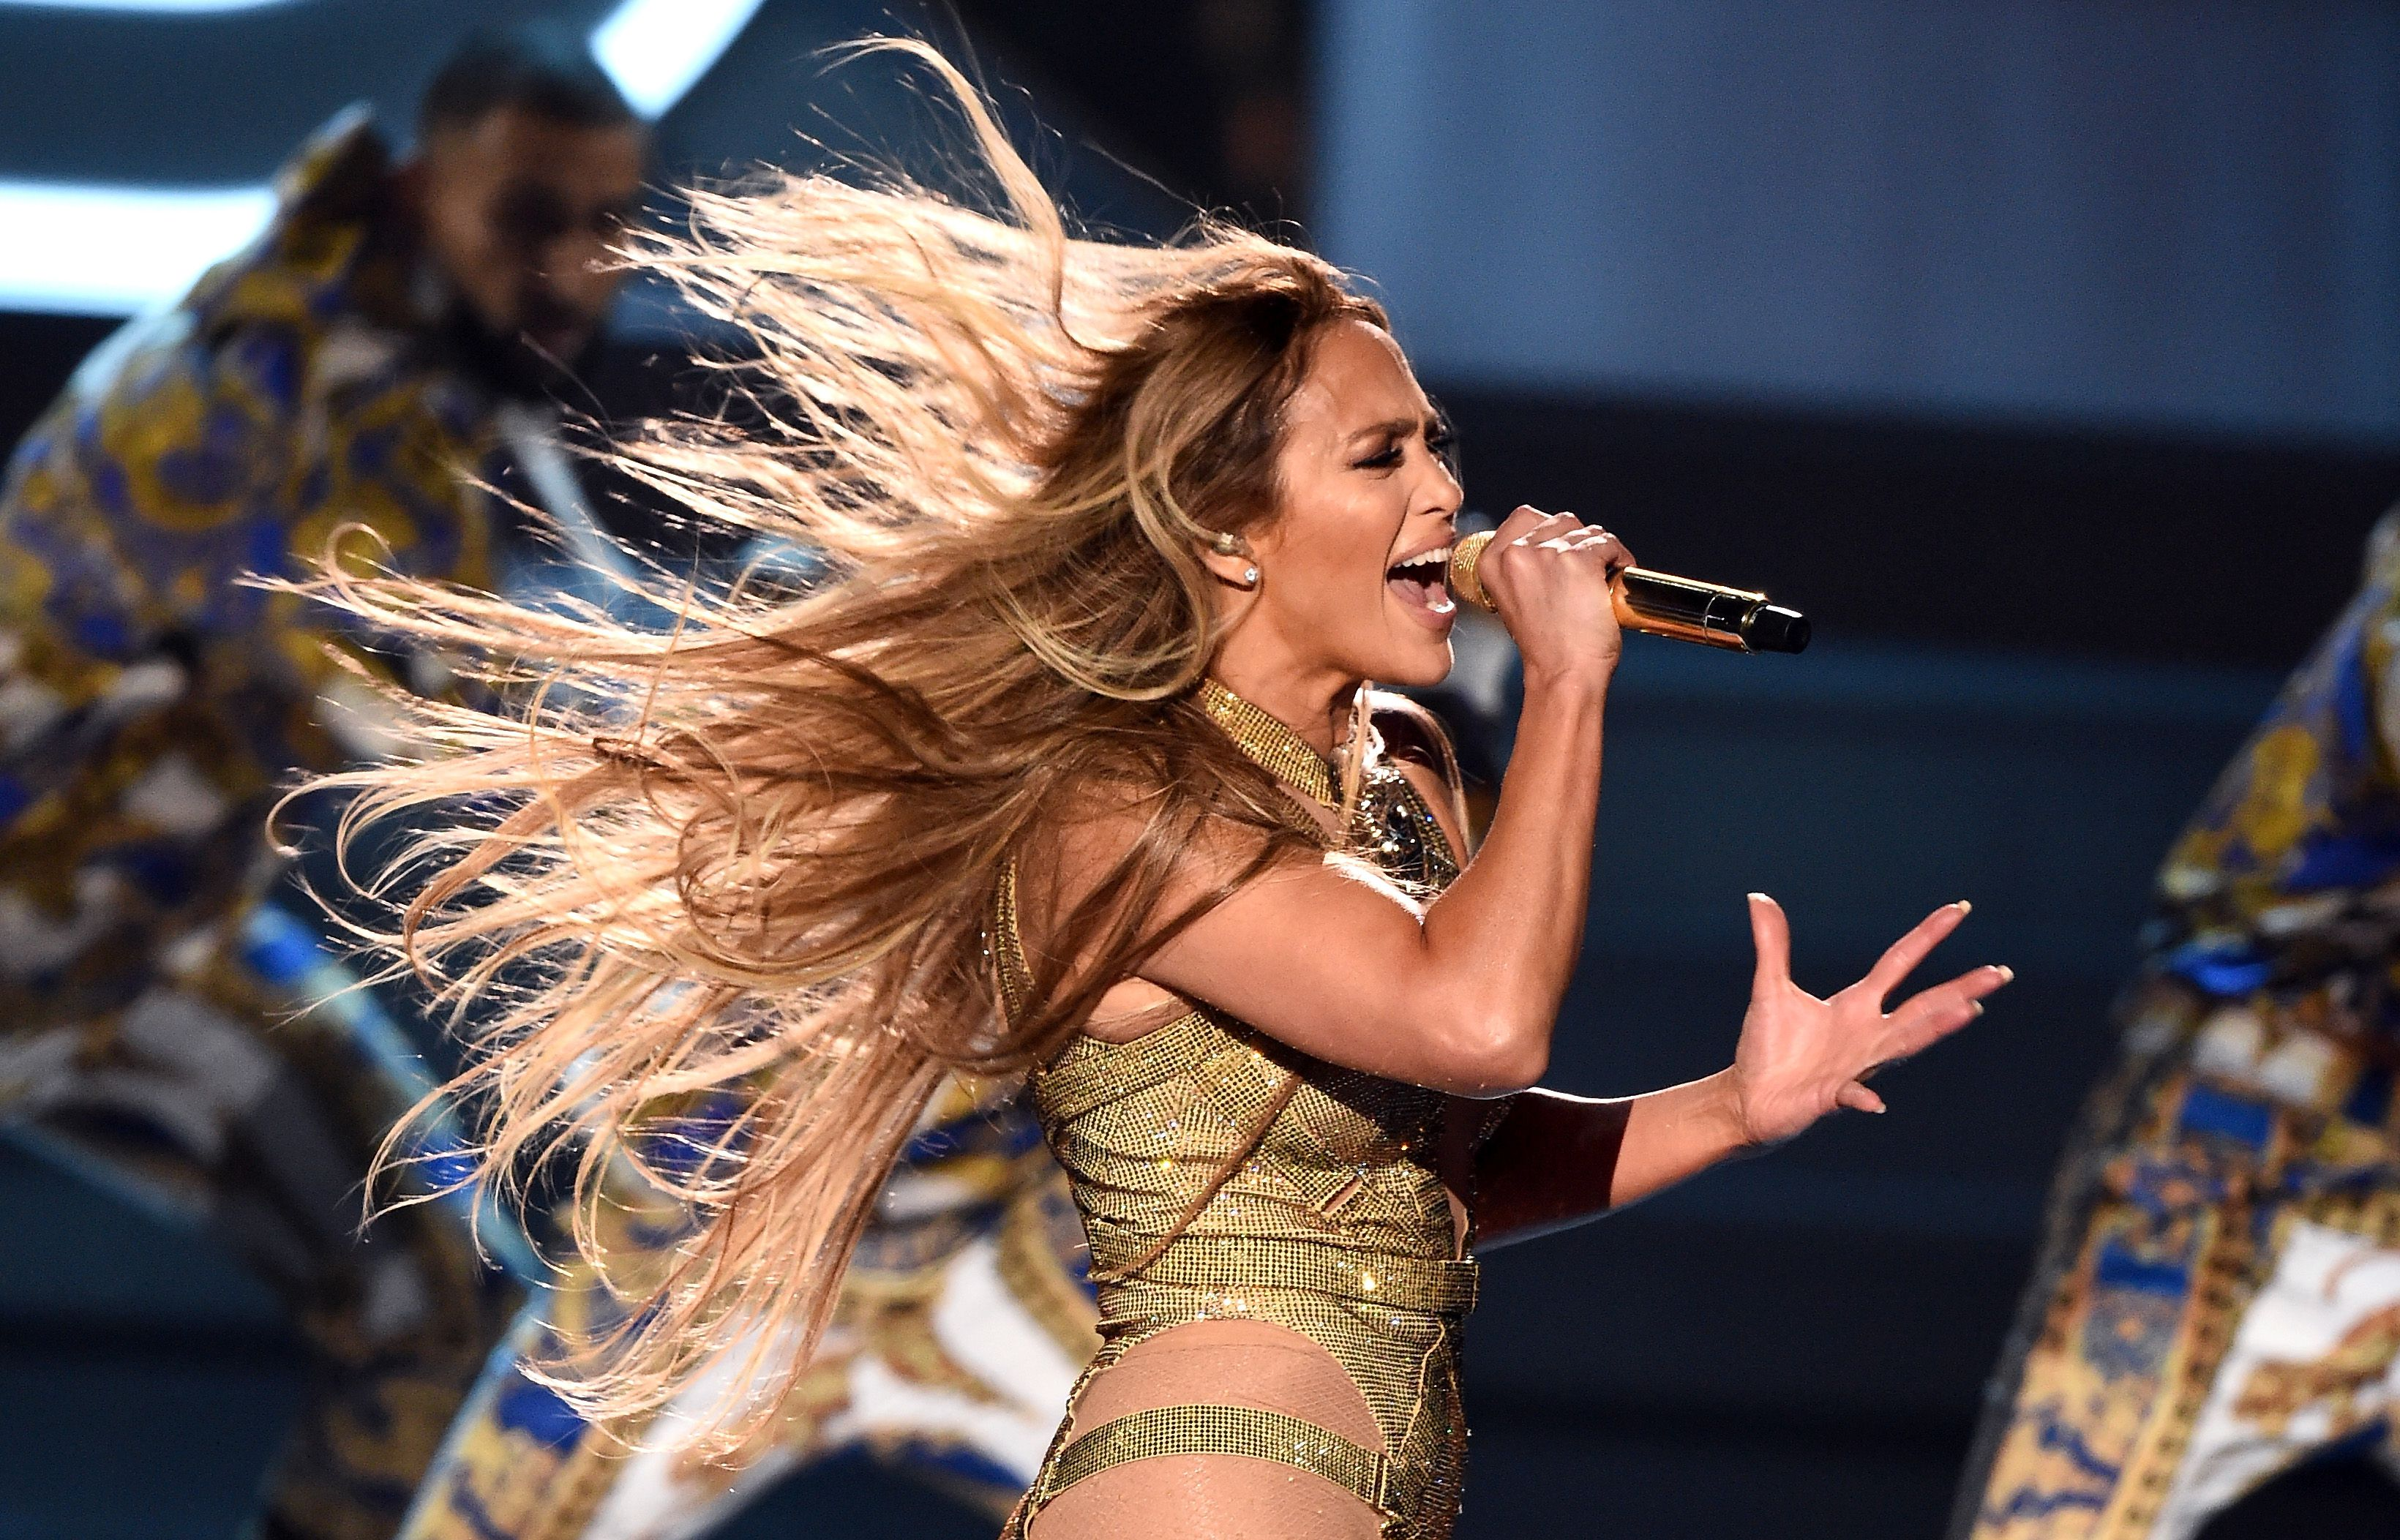 jennifer-lopez-performs-onstage-during-the-2018-mtv-video-news-photo-1020376838-1534819941